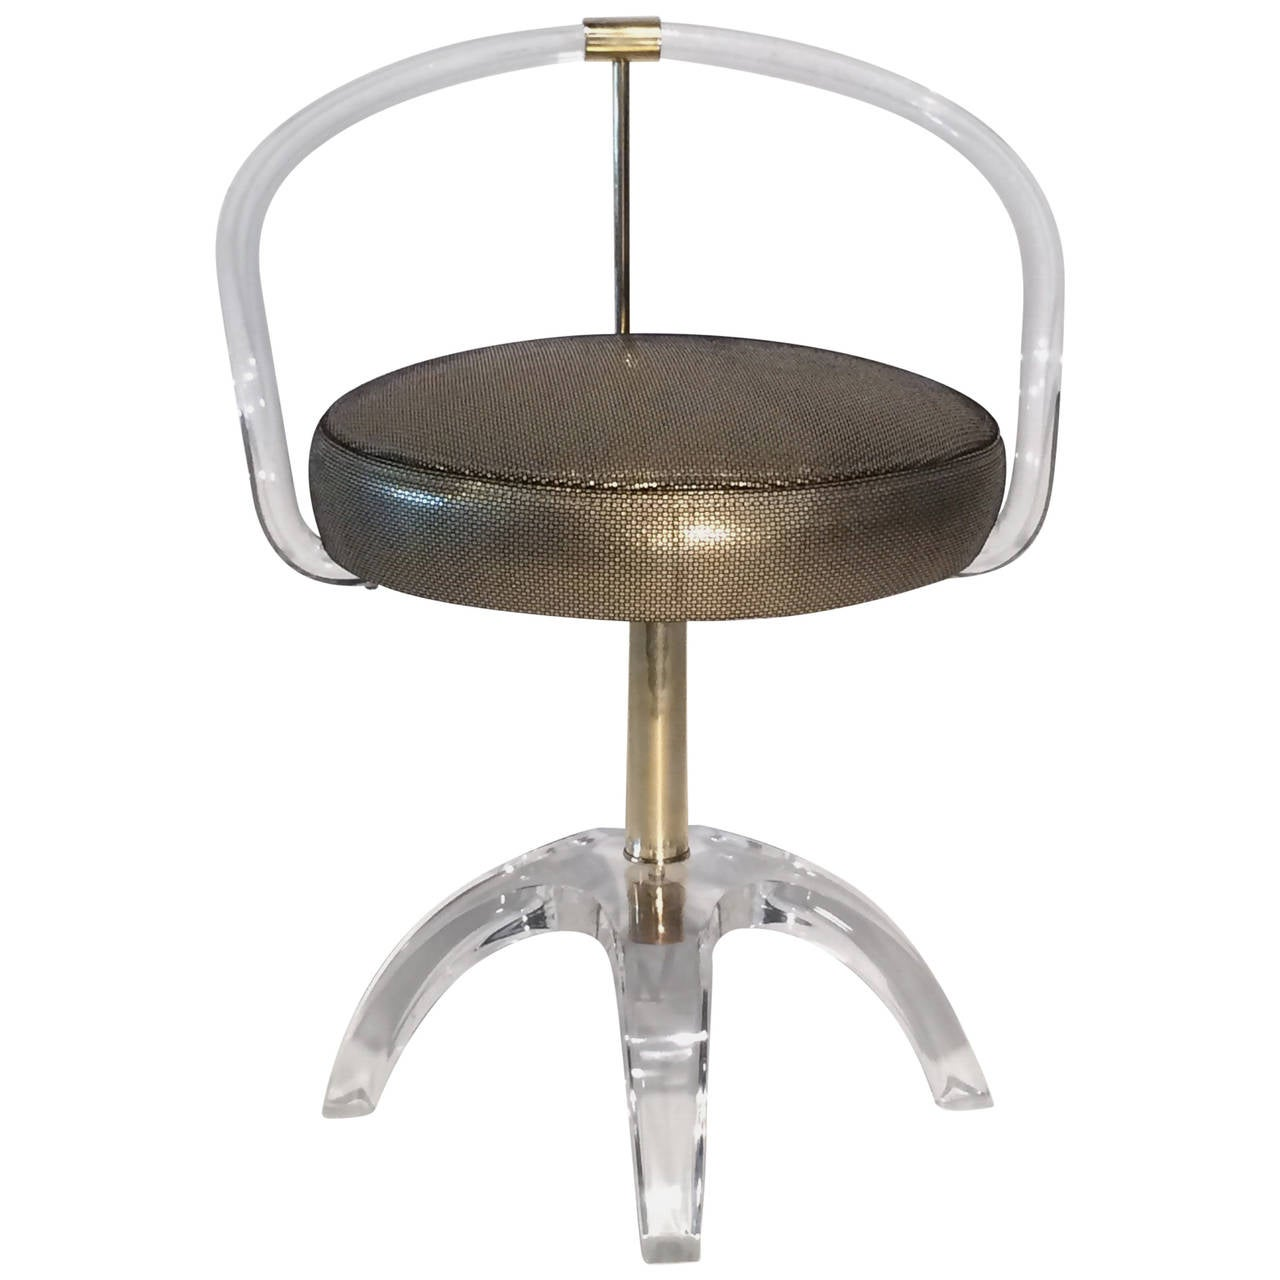 Acrylic and brass swivel vanity stool by charles hollis jones at 1stdibs - Acrylic vanity chair ...